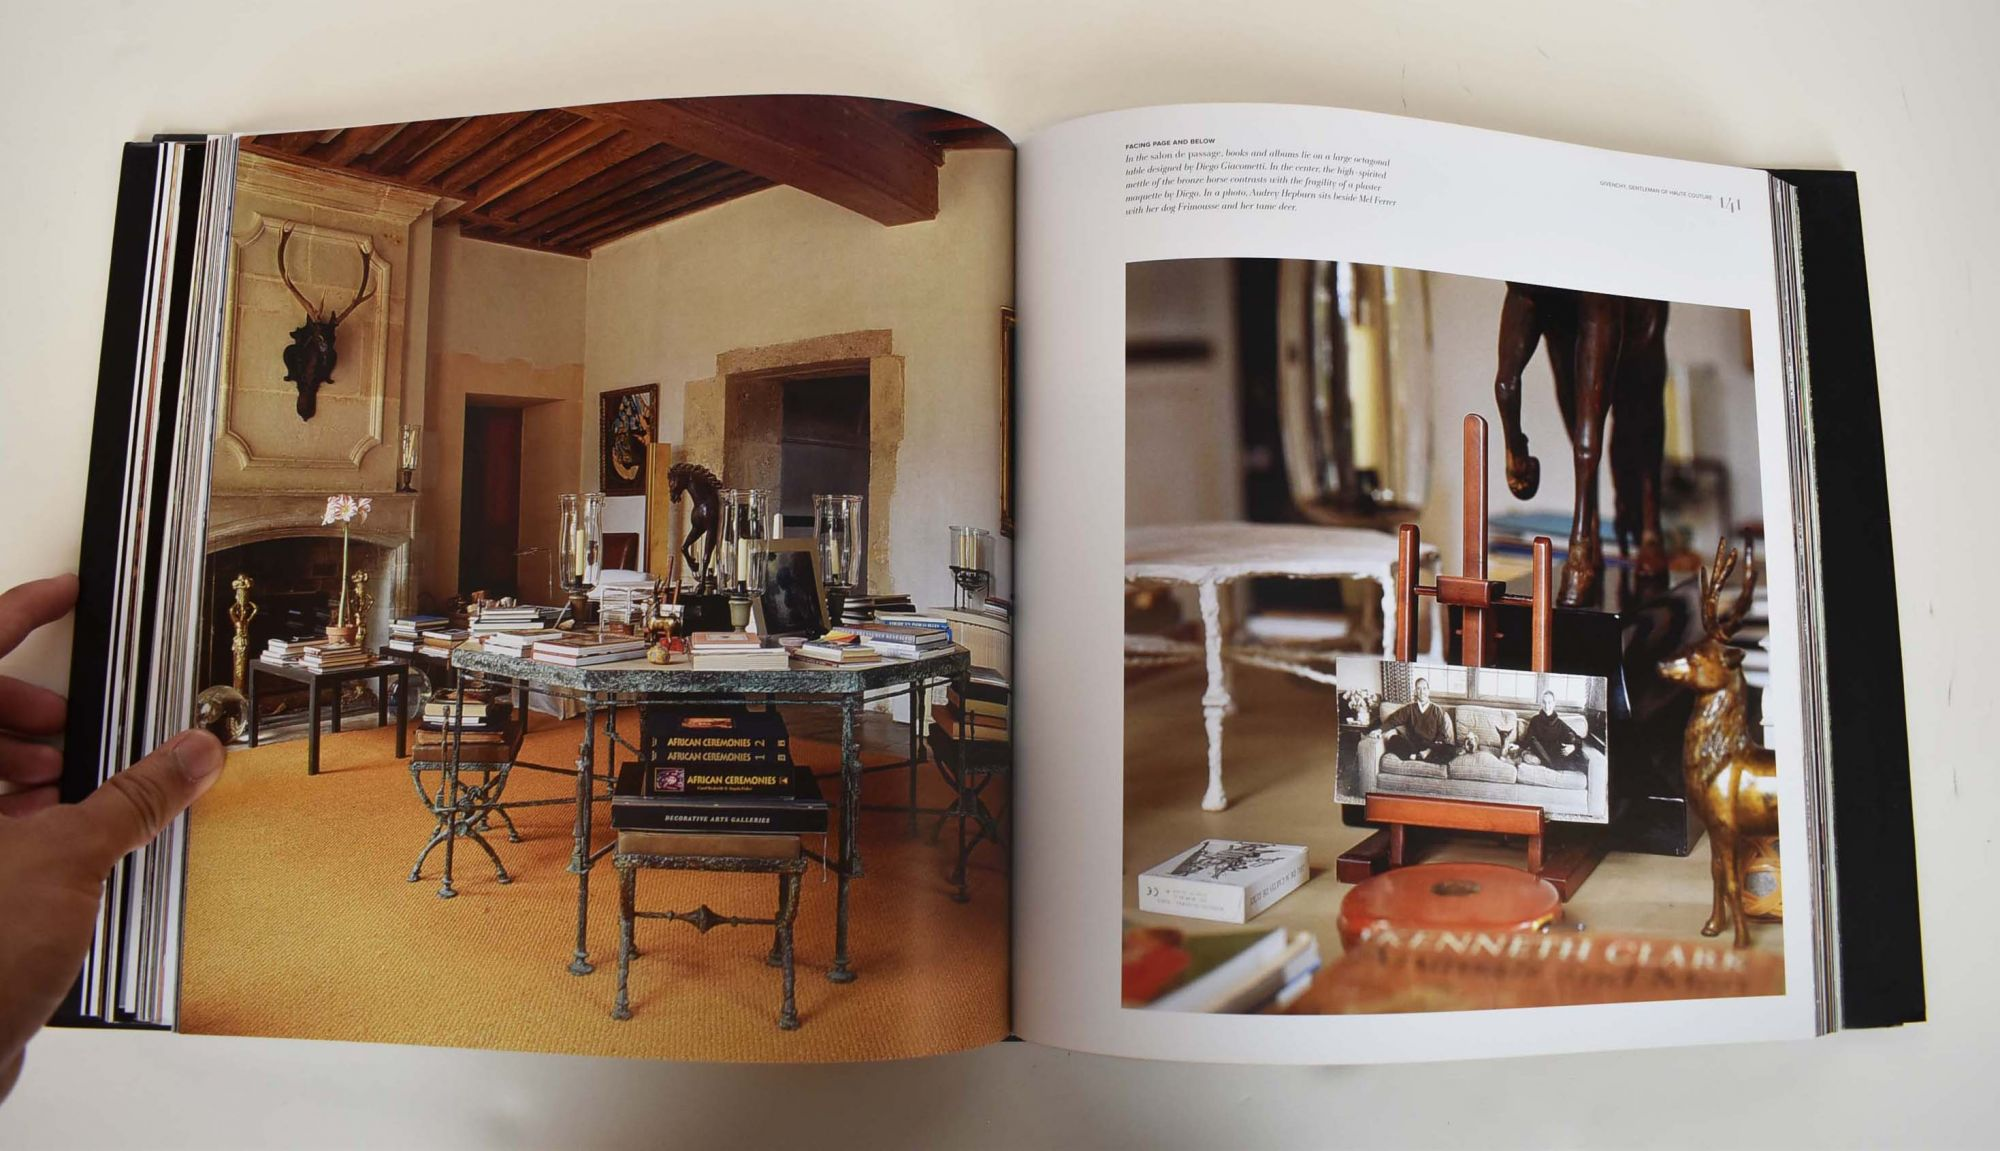 Arte Salon Pennsylvania French Interiors The Art Of Elegance By Christiane De Nicolay Mazery On Mullen Books